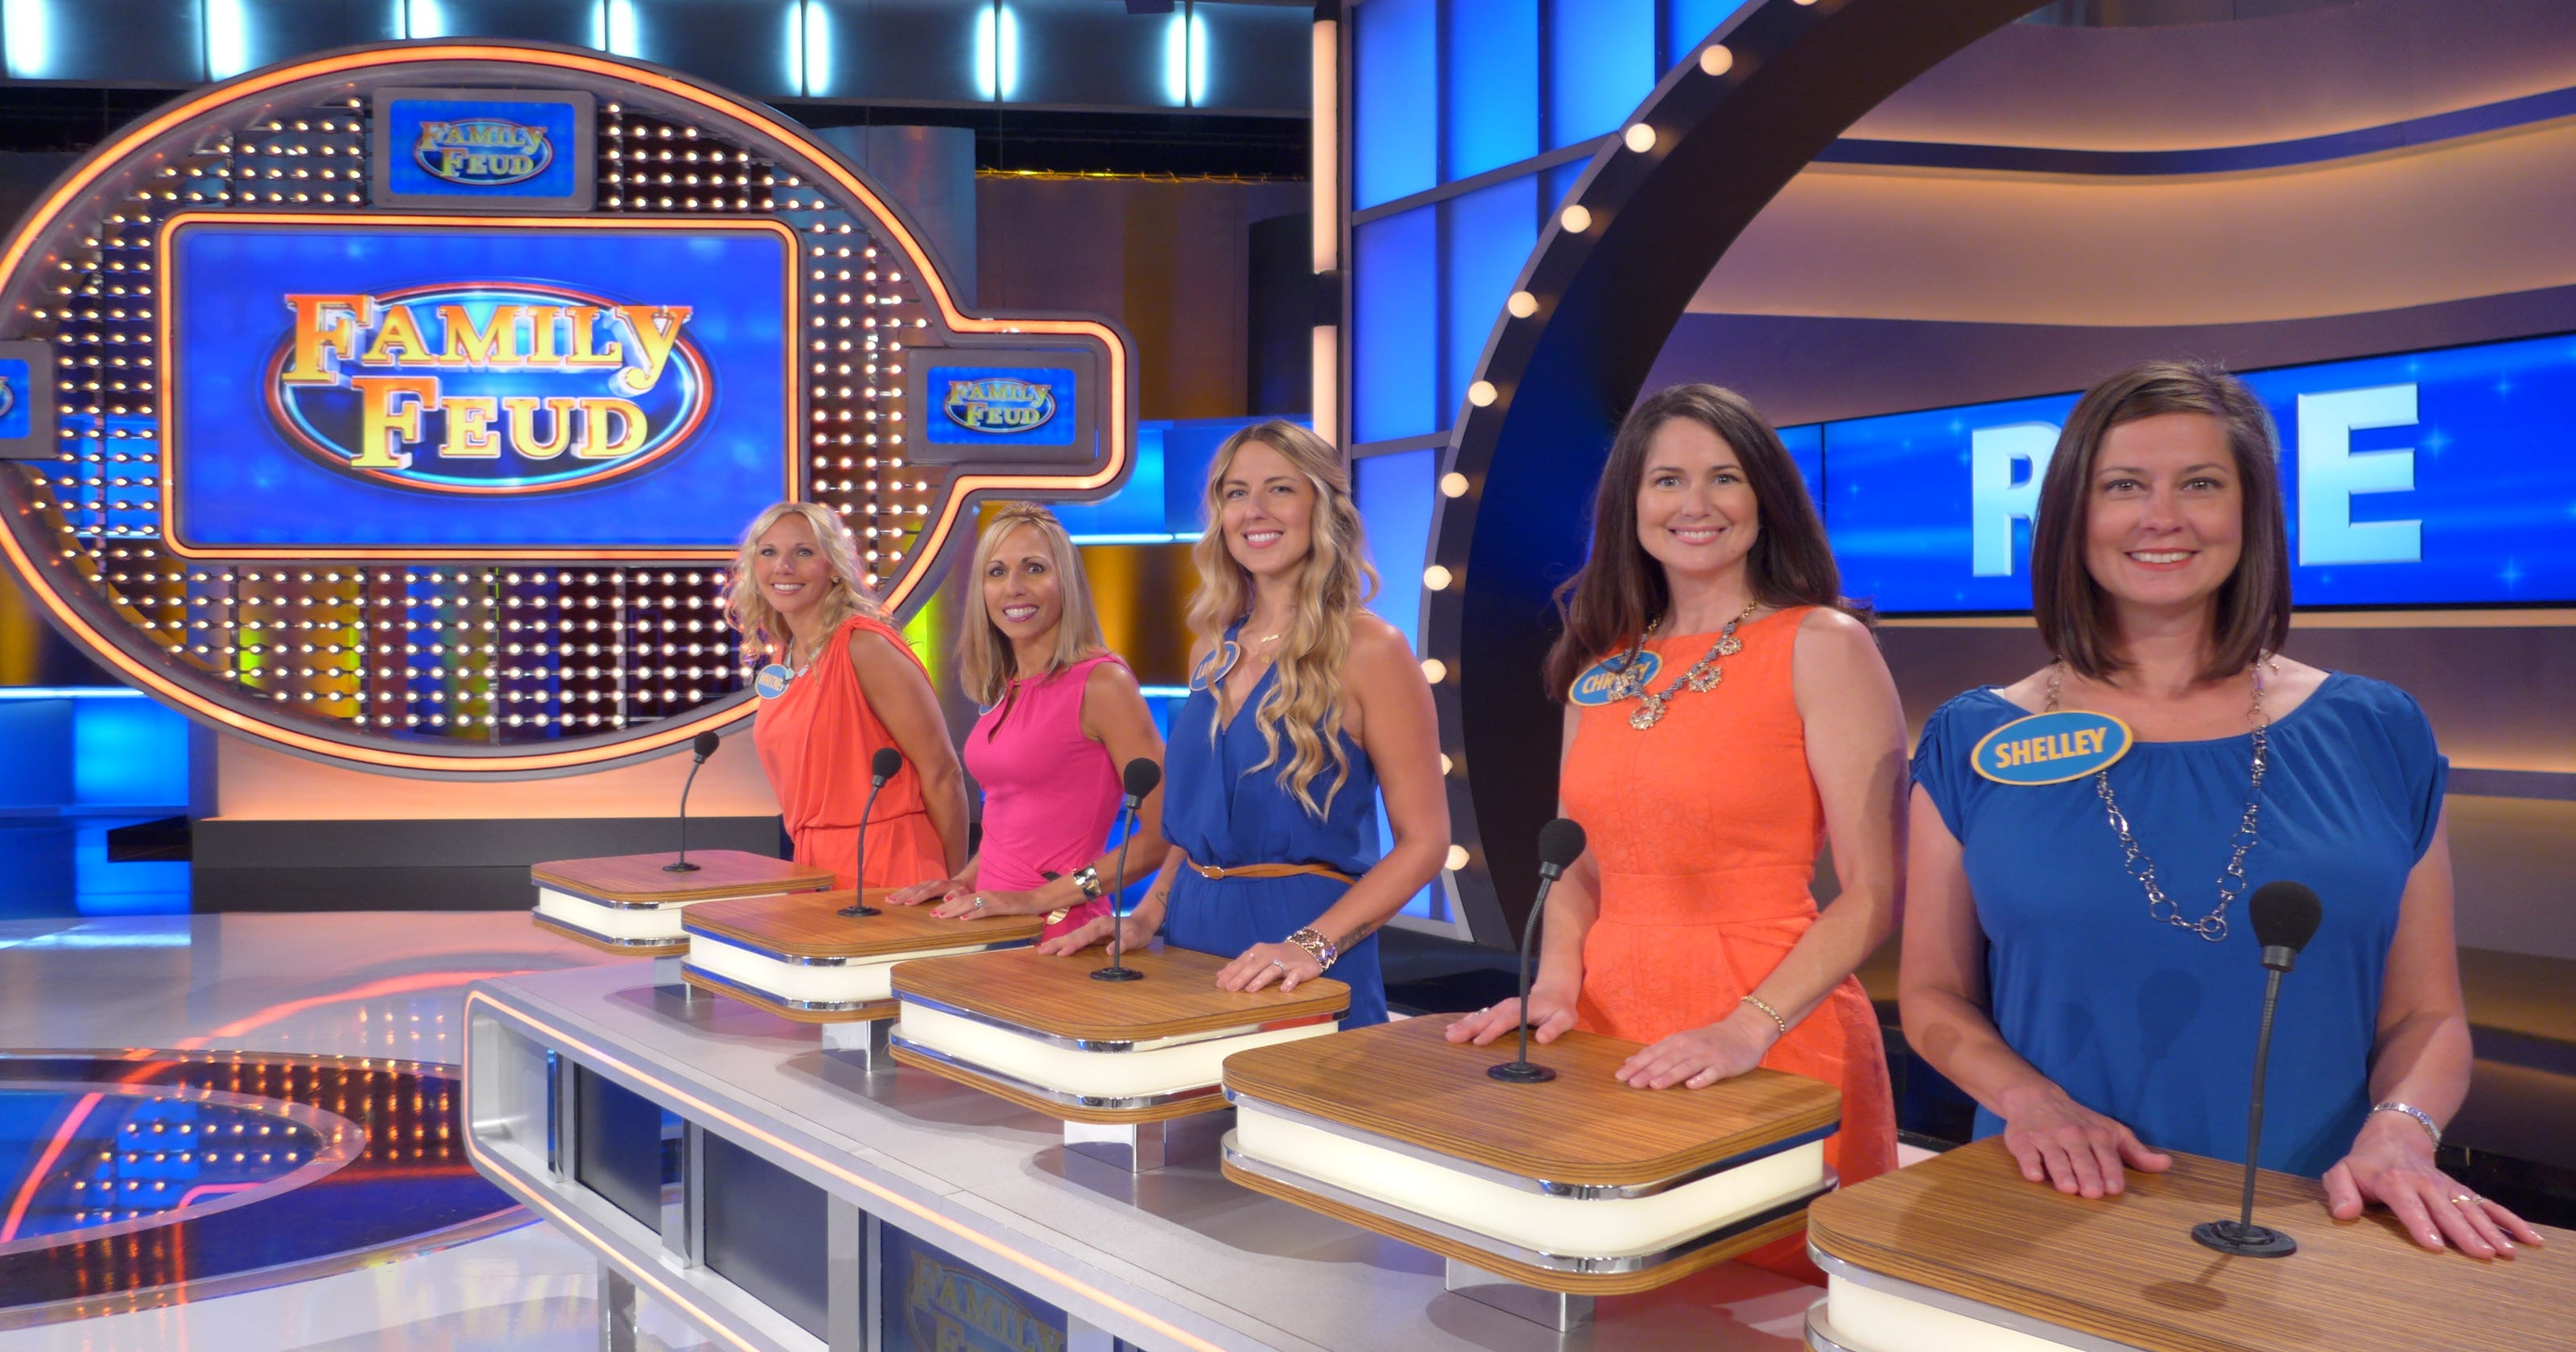 tallahassee sisters to be on family feud tonight